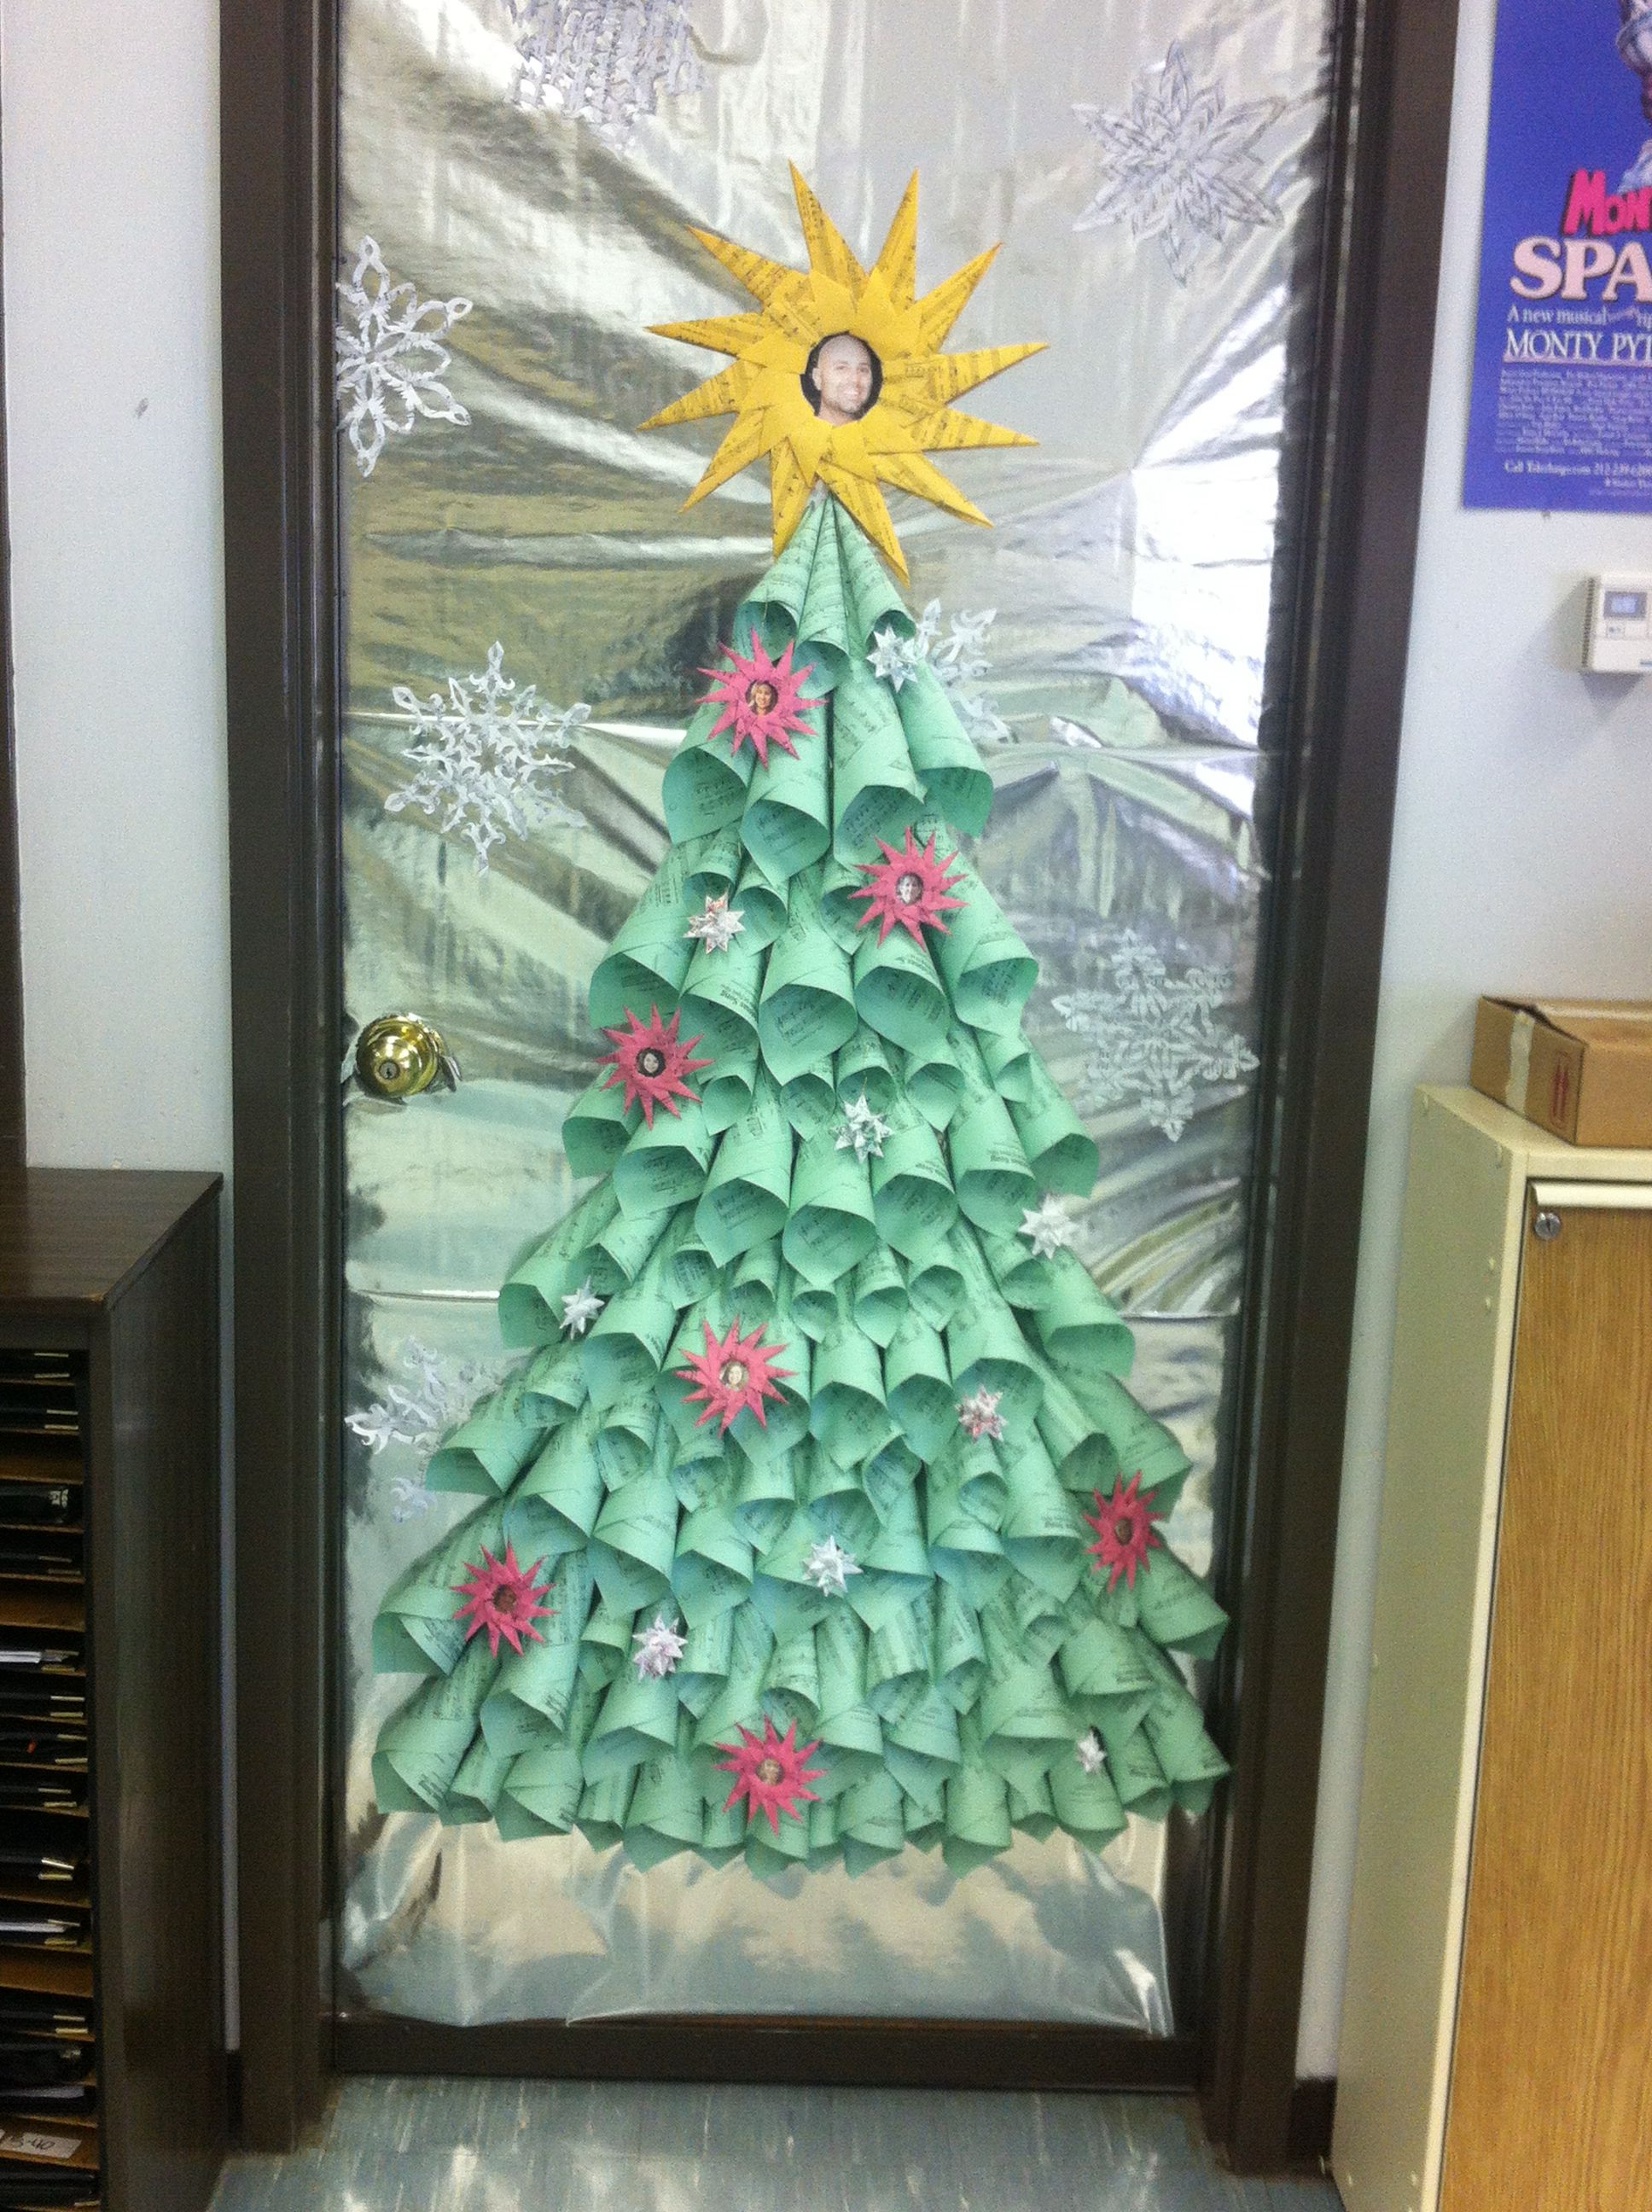 The Choir Room Was The Winner Of My School S Christmas Door Decoration Con Christmas Door Decorating Contest Christmas Door Decorations Door Decorating Contest